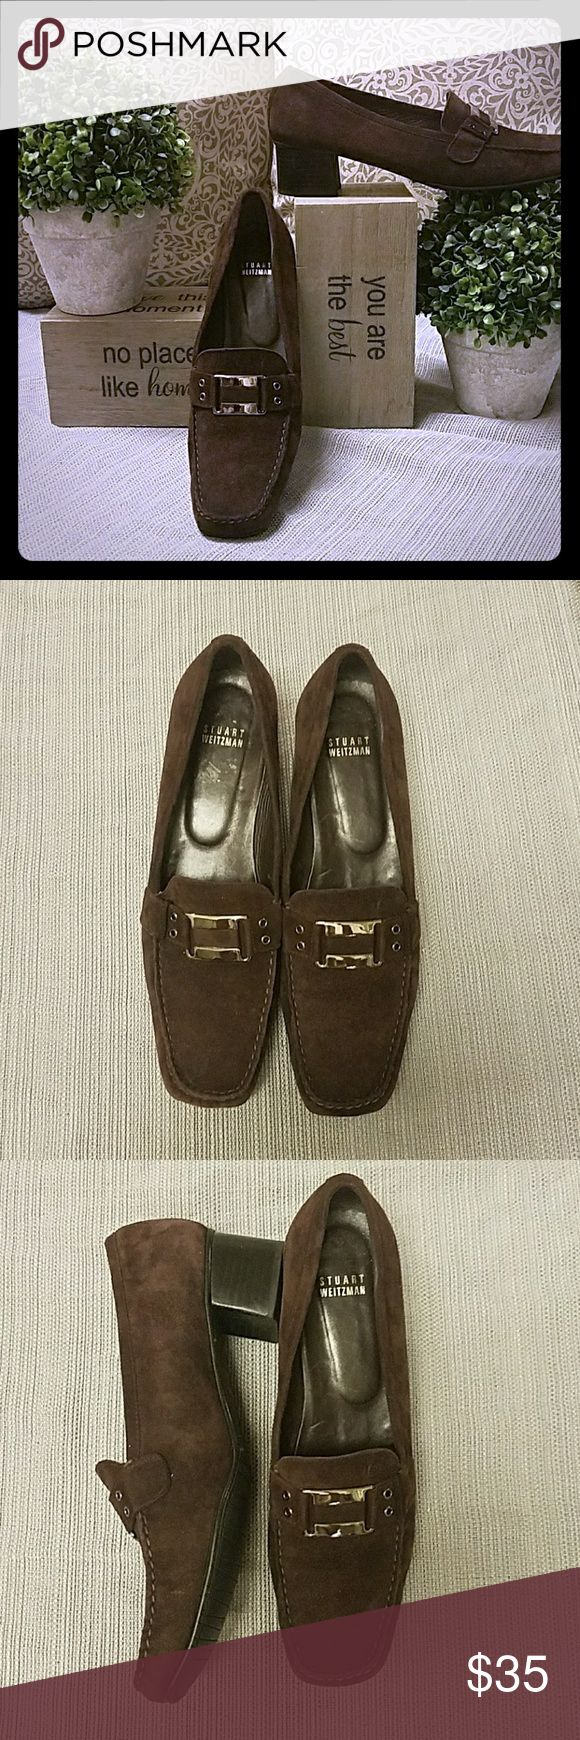 Stuart Weitzman brown suede loafer size 10 1/2 Used in great condition perfect for fall. Stuart Weitzman Shoes Flats & Loafers